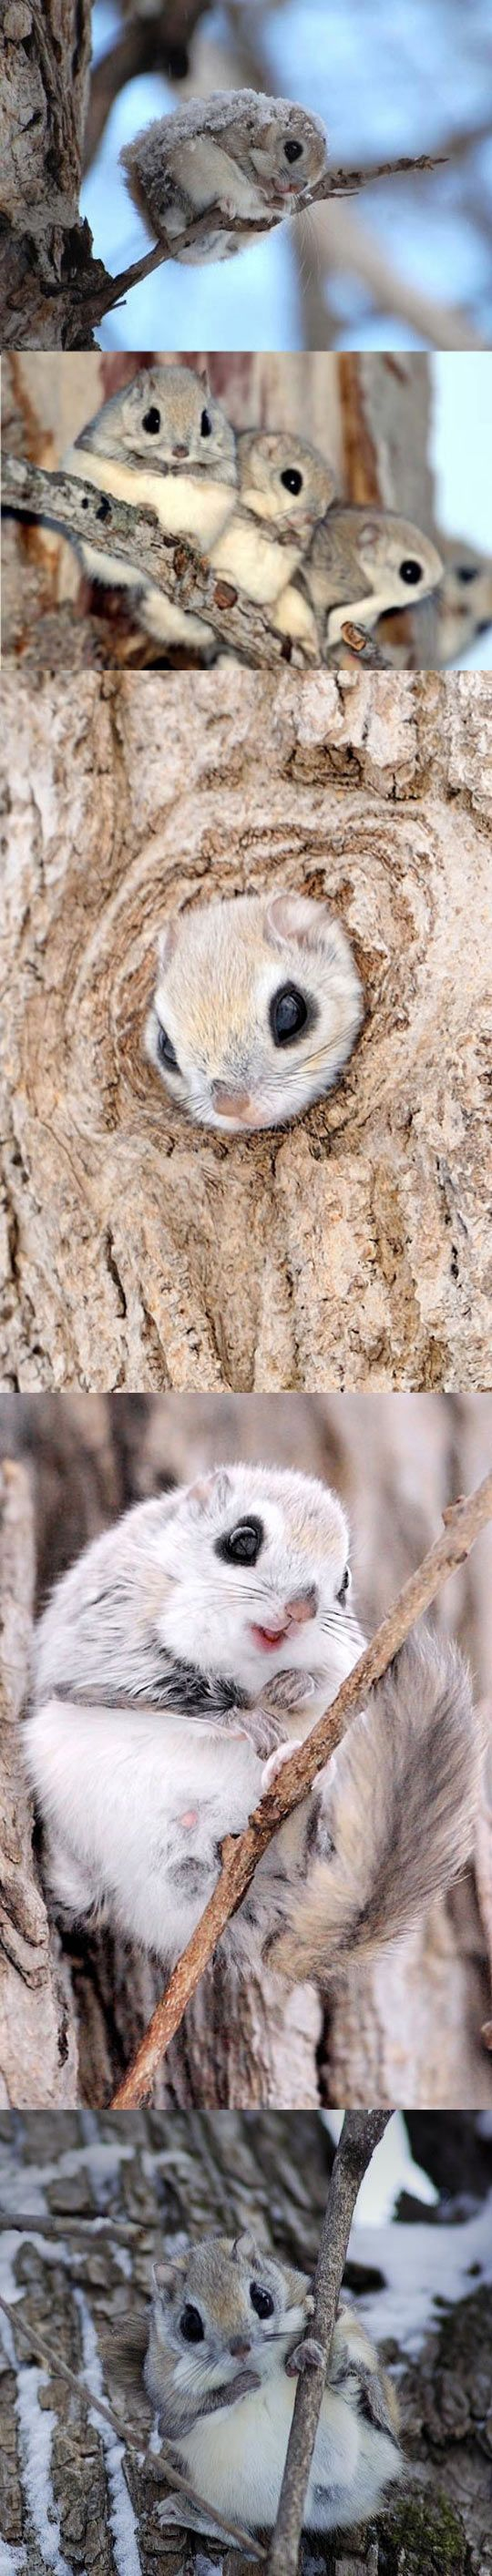 cute-Japanese-dwarf-flying-squirrels-tree